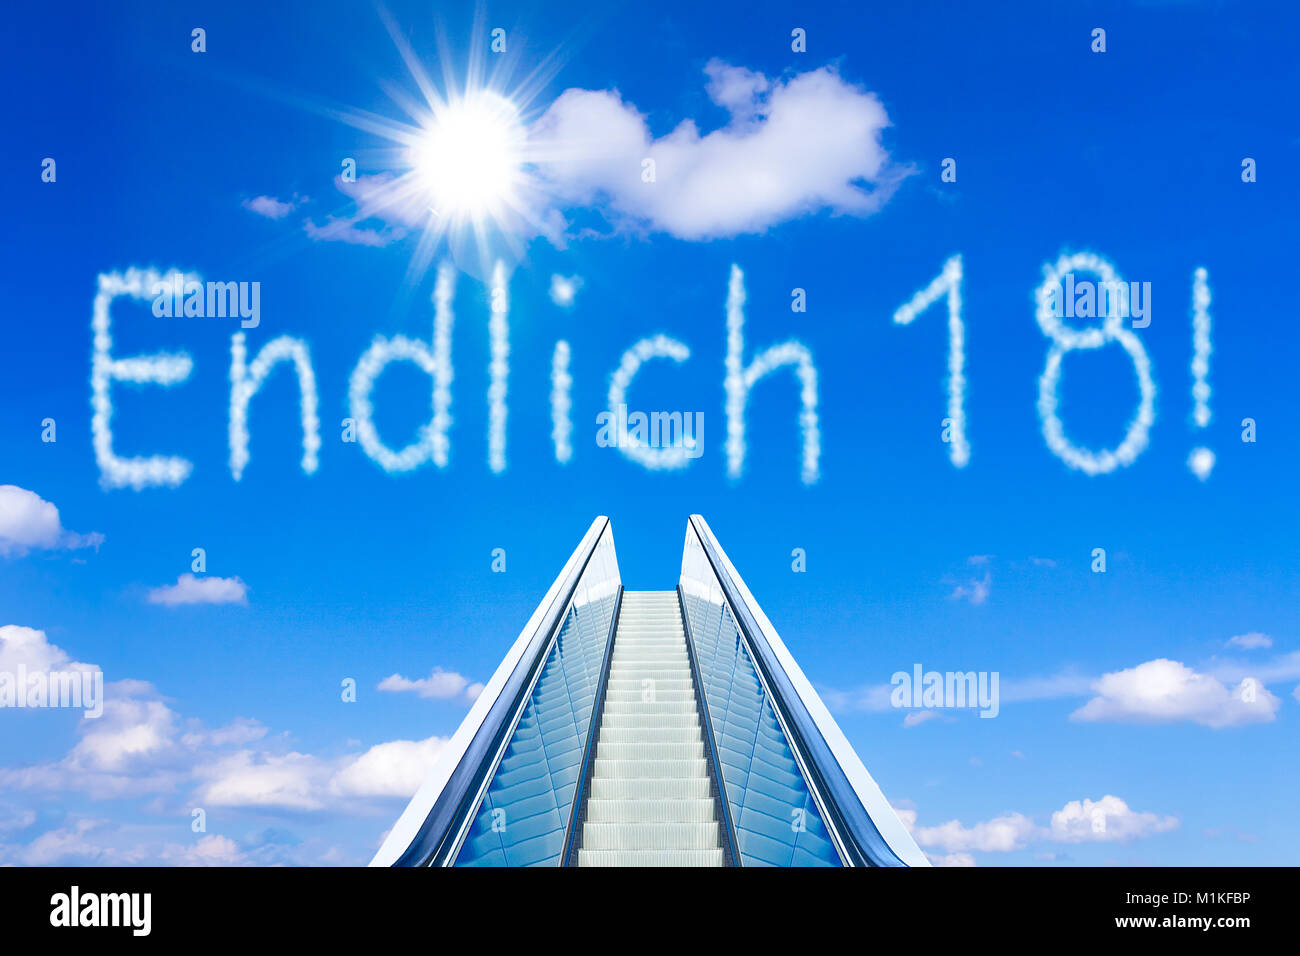 Escalator into a blue sky, concept of achievement, ENDLICH 18 german text, meaning FINALLY 18, adulthood and freedom Stock Photo